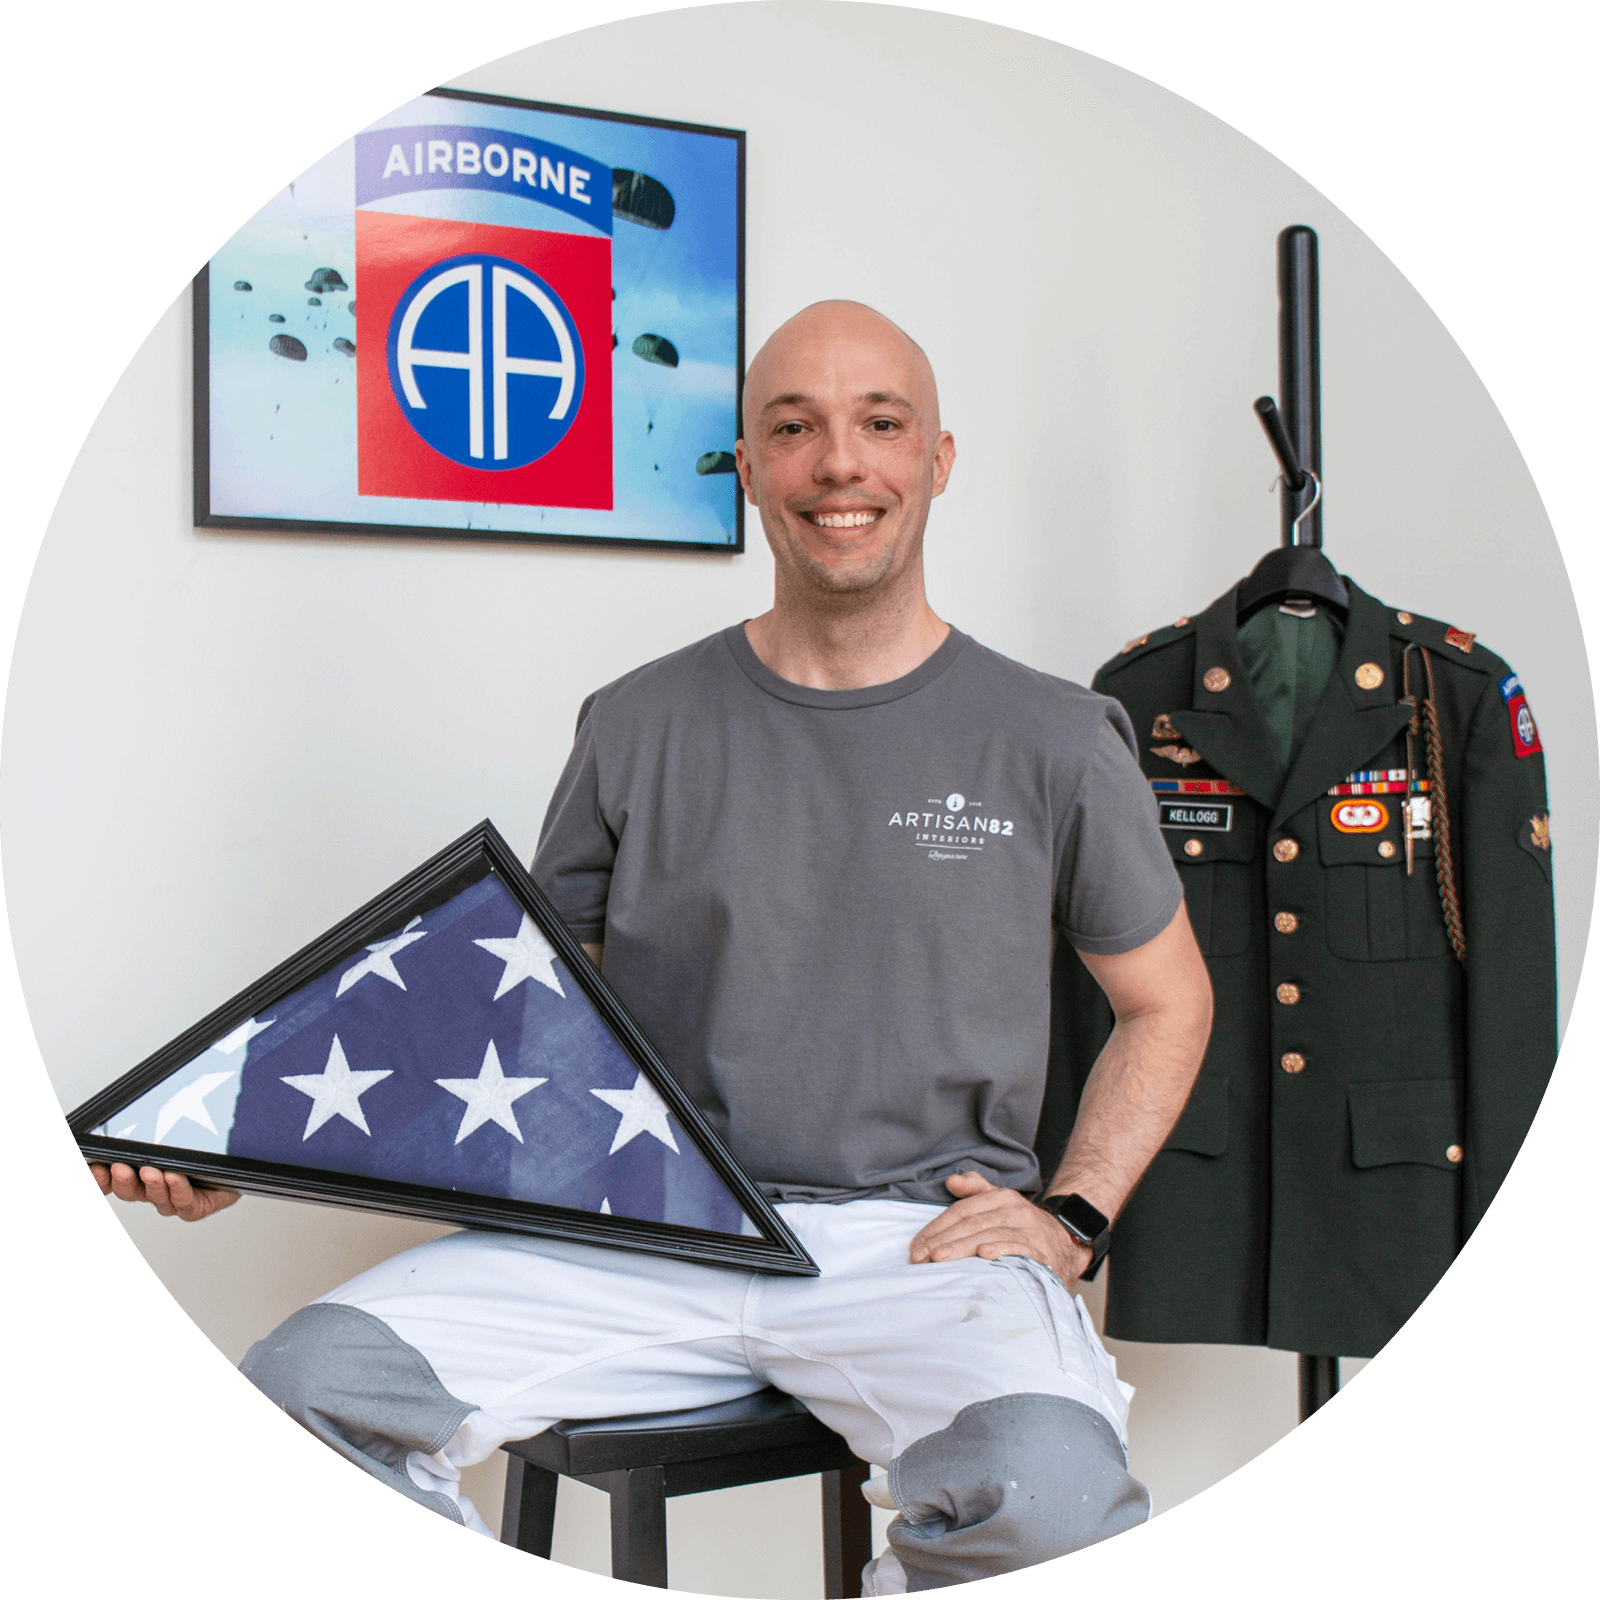 Veteran - From 1999 to 2003, Dan served in the U.S. Army as a paratrooper with the 82nd Airborne division. From completing basic training at Fort Jackson in South Carolina to serving as a Logistics Specialist and Paratrooper in Kandahar, Afghanistan, he practiced Army values such as preparation, teamwork, respect, and grit. For his service, Dan earned an honorable discharge, as well as Army Achievement and Commendation Medals.